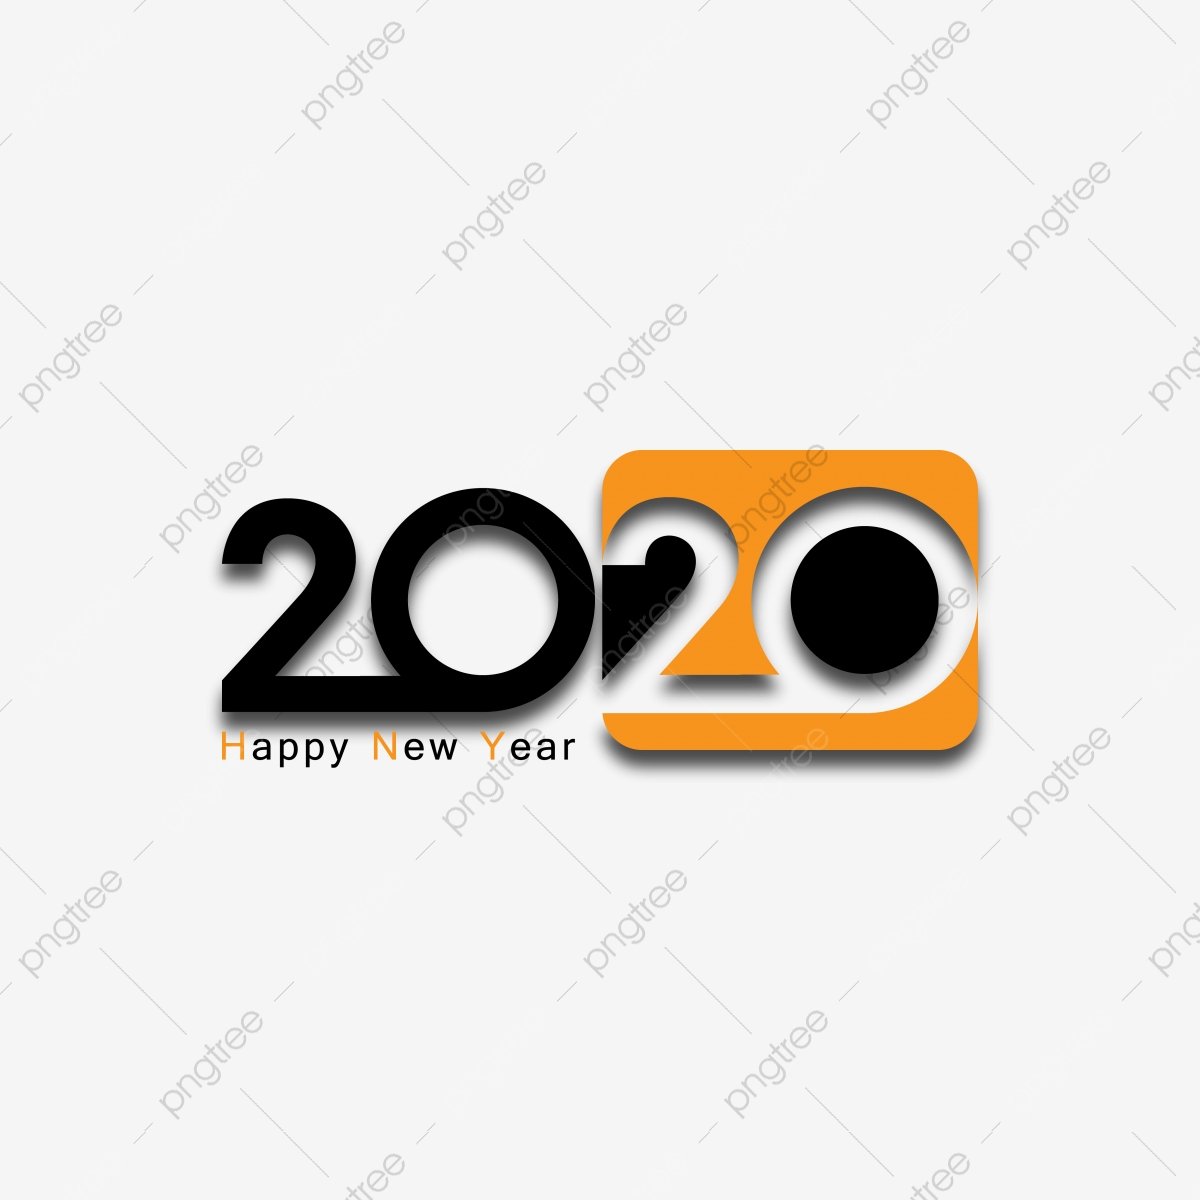 Happy New Year 2020 Black And Yellow Color Logo Text Design Cover Of Business Diary For 2020 With Wishes Greeting Card Design Business Icons New Icons Logo Icons Png And Vector With